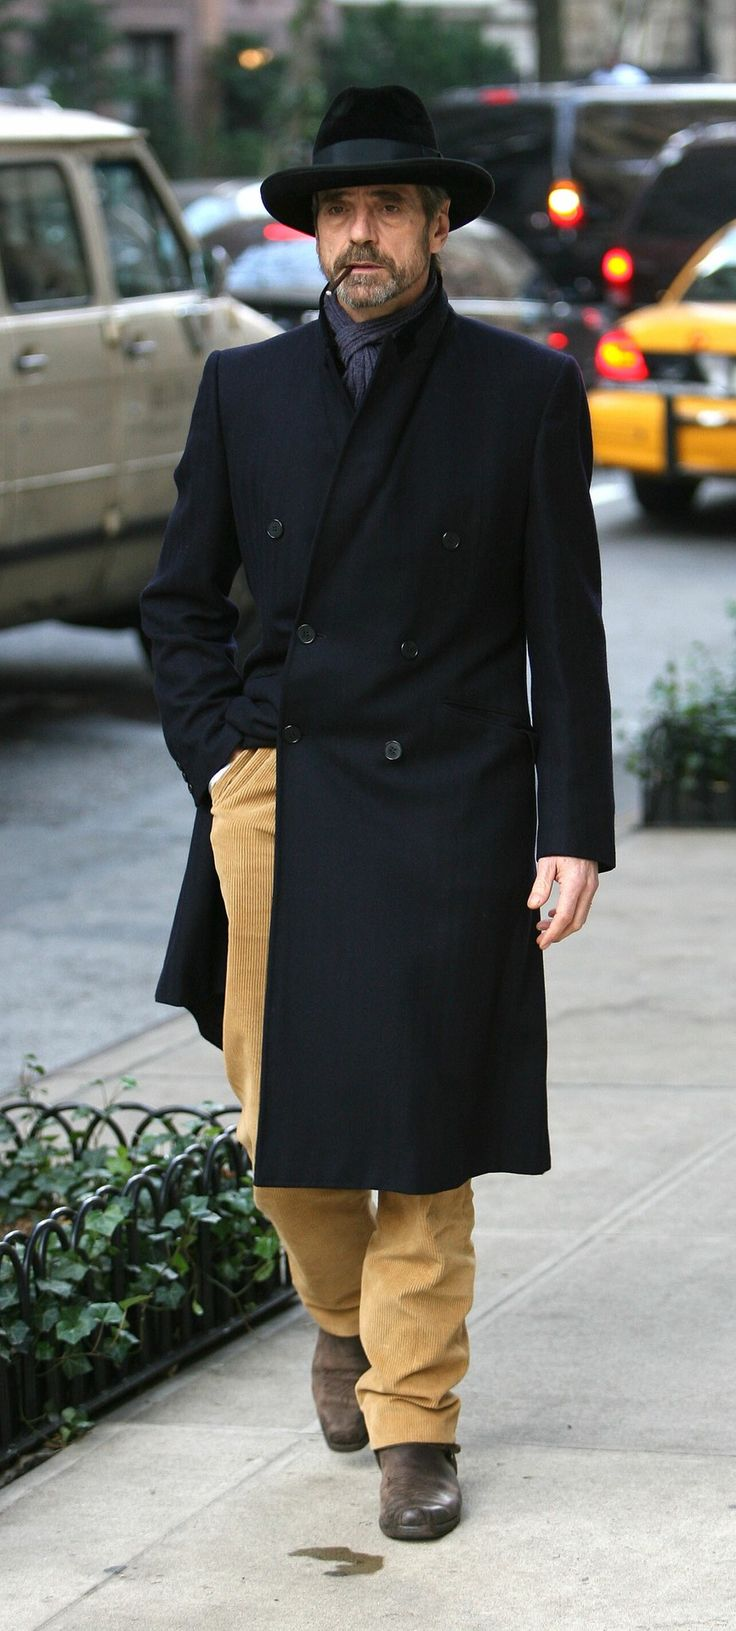 the hat, the pipe, the coat ... Jeremy Irons, looking quite stylish as he walks home - London